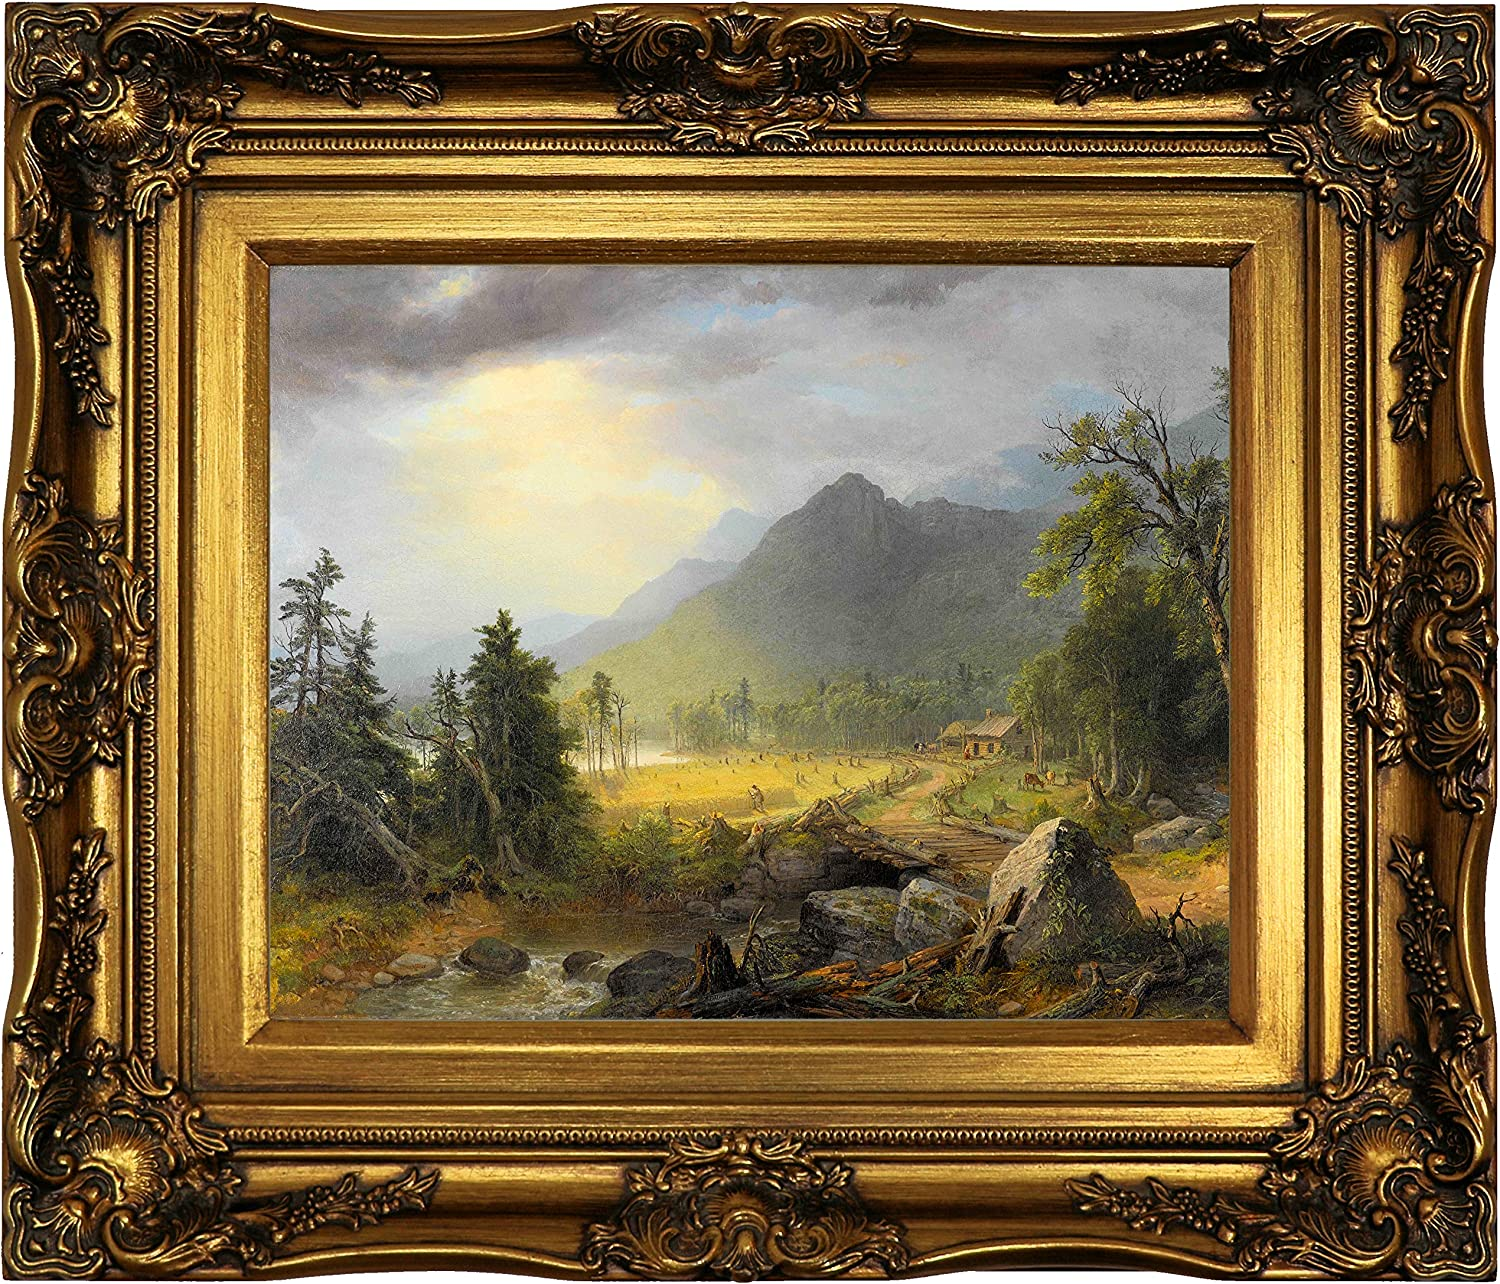 Amazon Com Historic Art Gallery The First Harvest In The Wilderness 1855 By Asher B Durand Framed Canvas Print Size 11x14 Gold Posters Prints